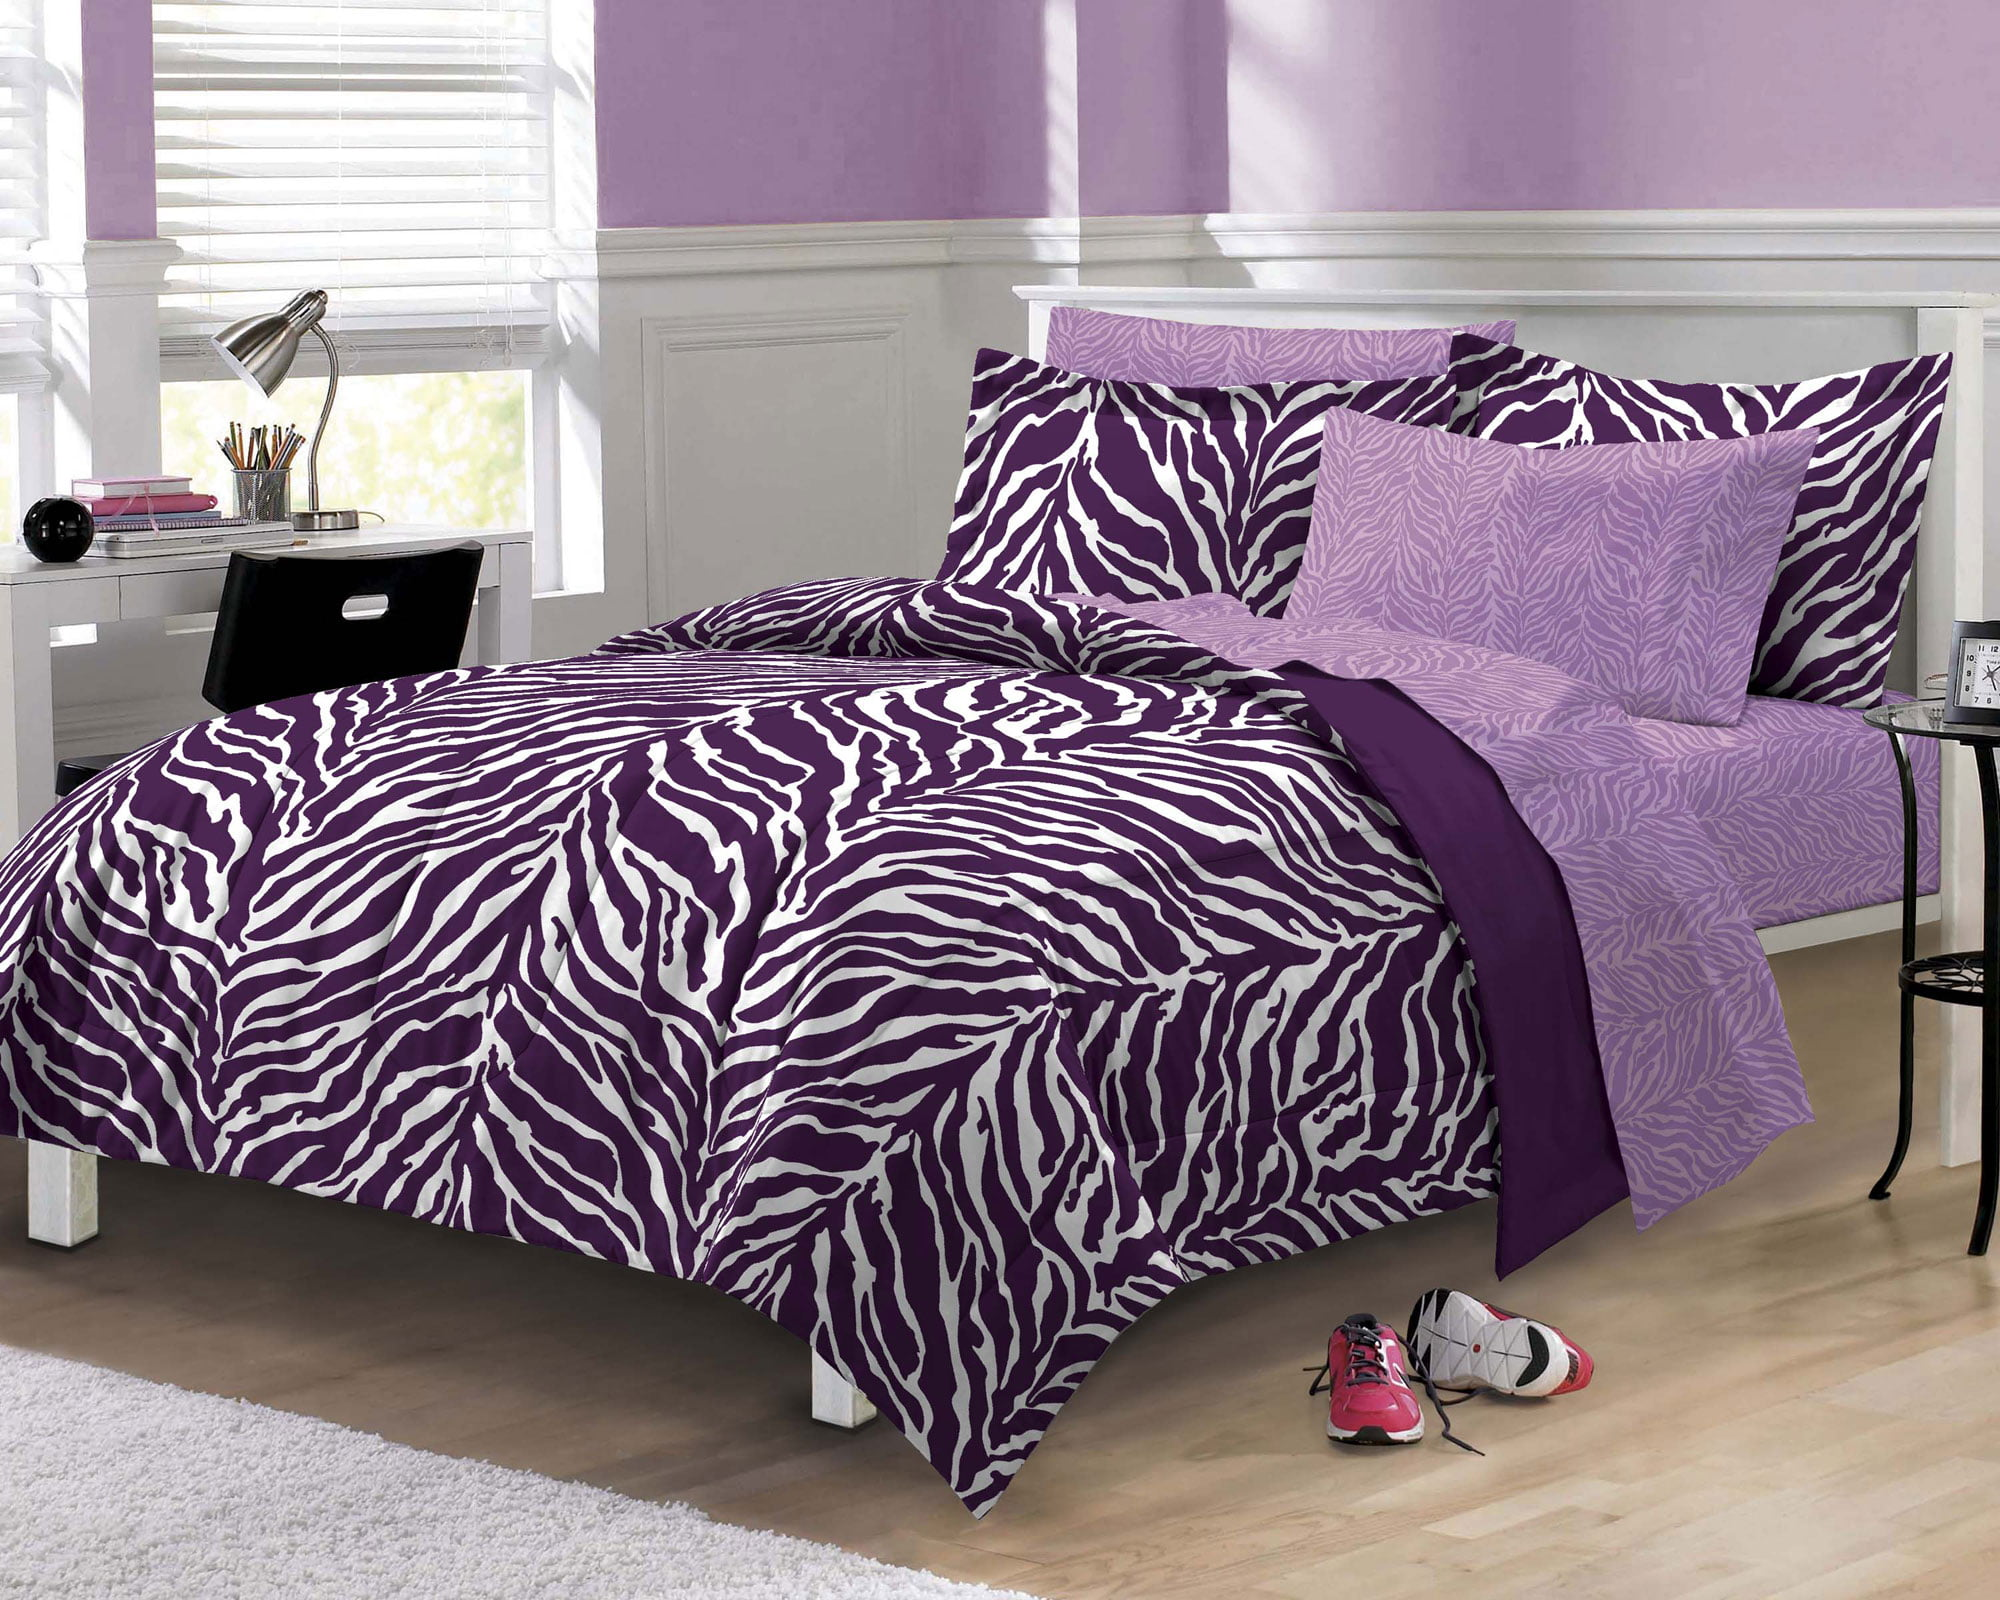 My Room Zebra Complete Bed In A Bag Bedding Set, Purple   Walmart.com